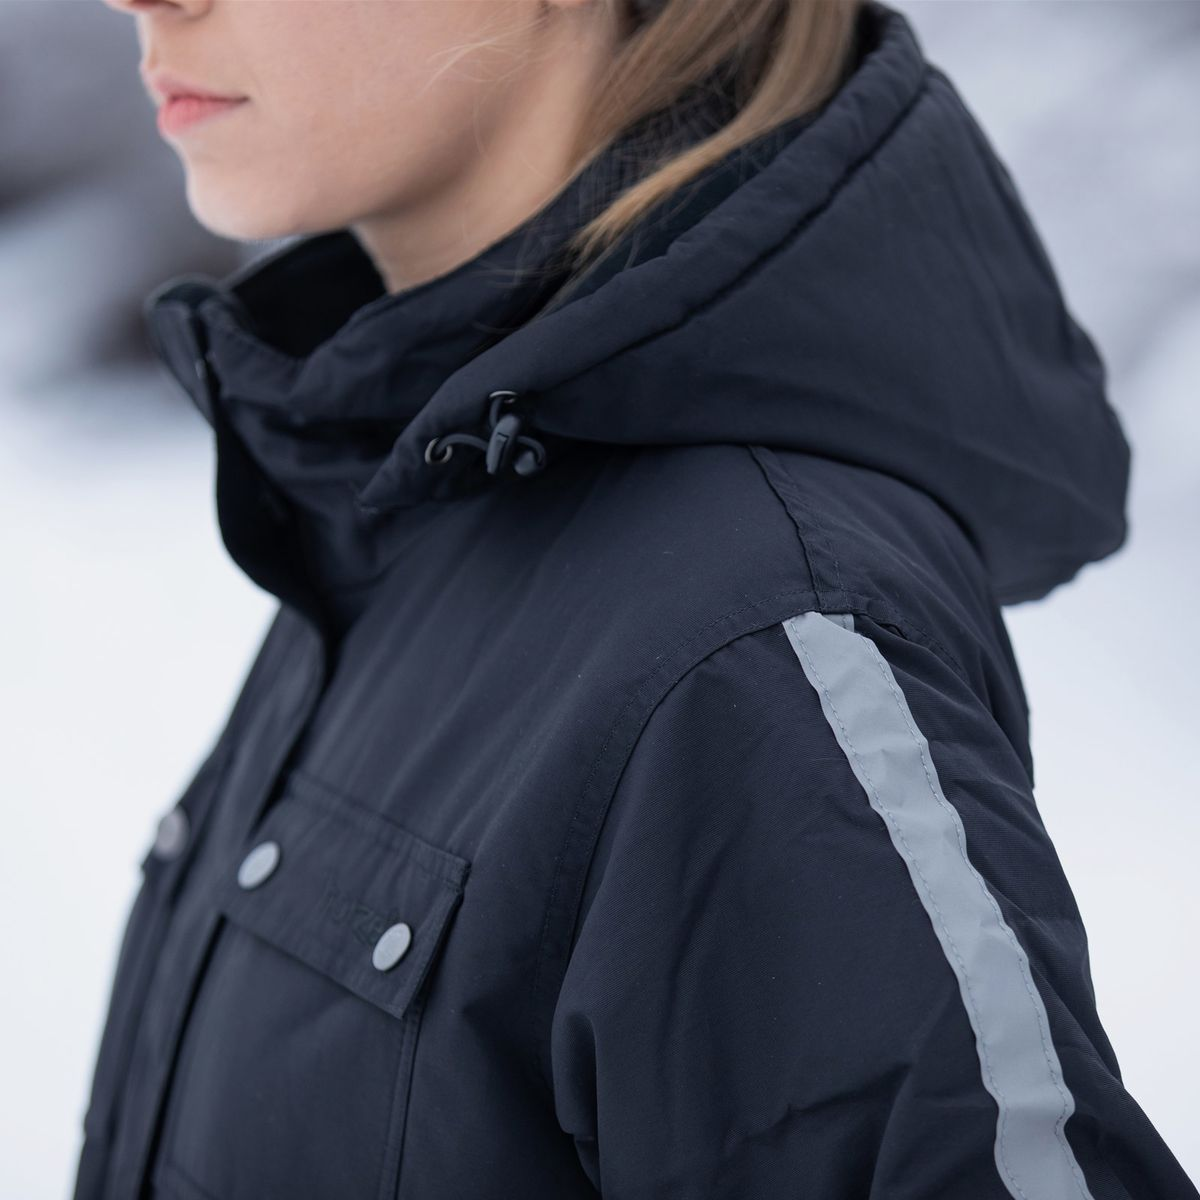 ed46d9fa01b Horze Winter Rider Jacket with Reflective Strips and Detachable Hood ...